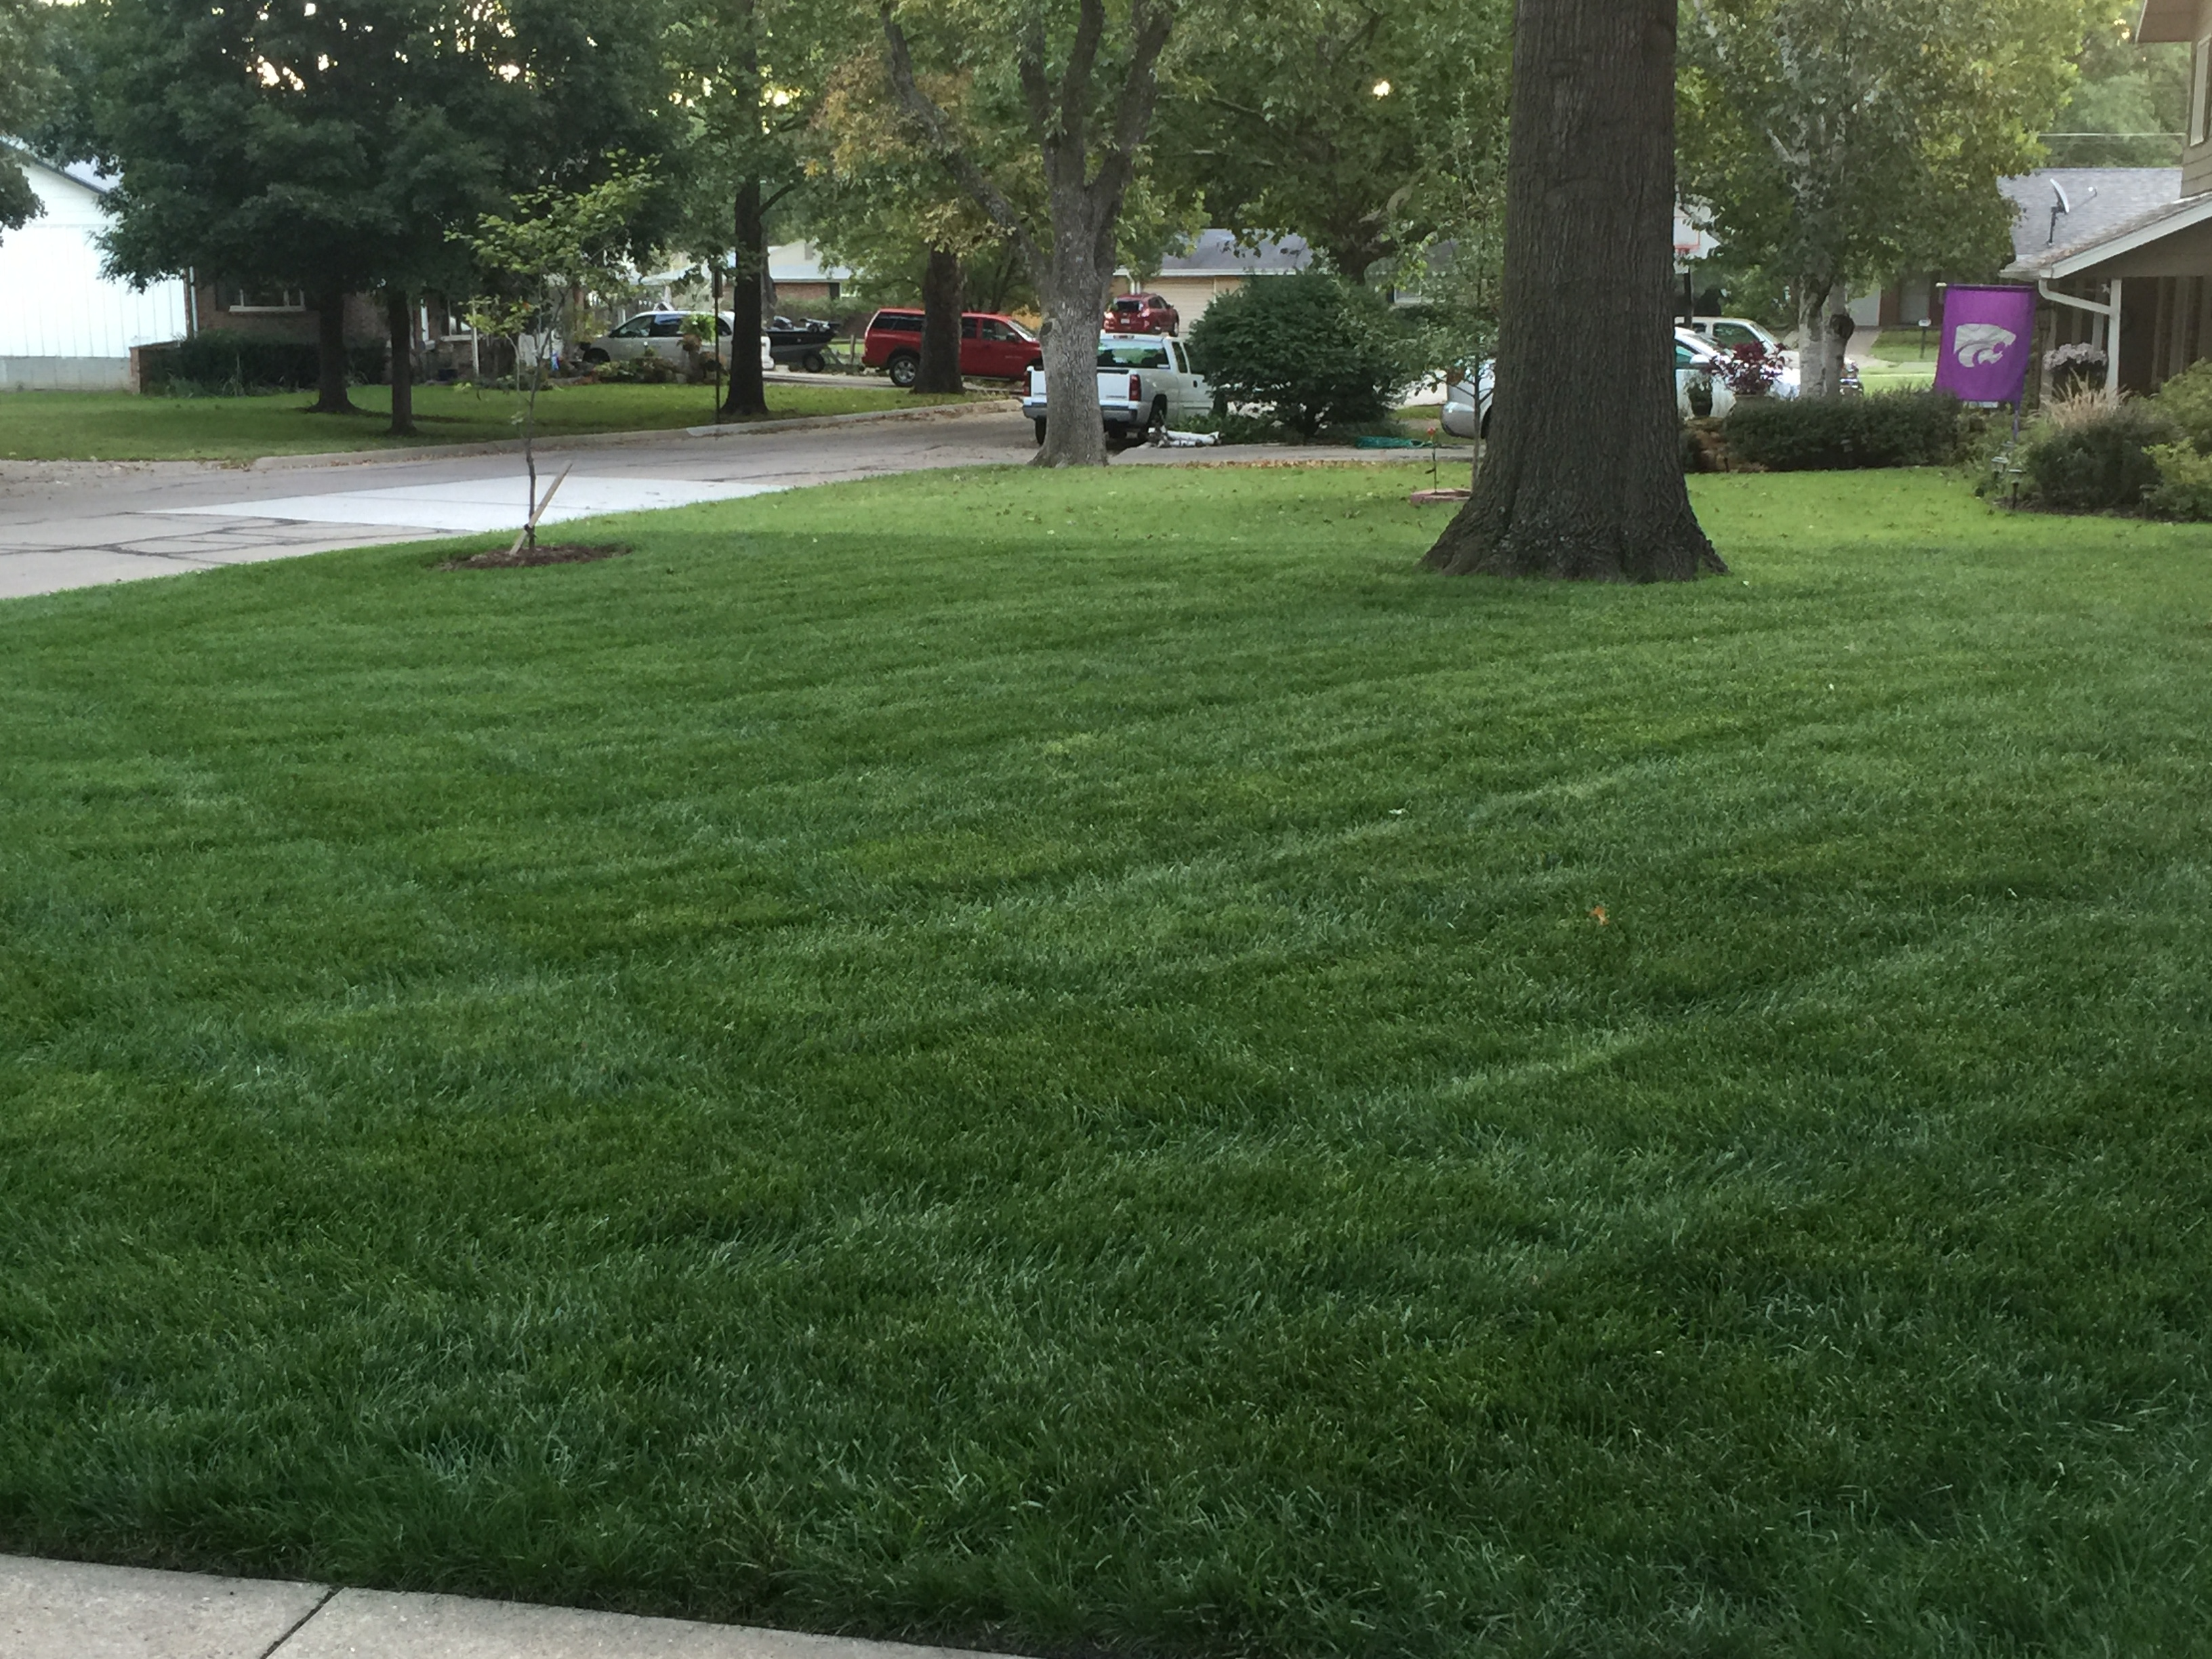 Tall fescue k state turfgrass homeowner do it yourself lawn calendar for cool season grasses solutioingenieria Gallery